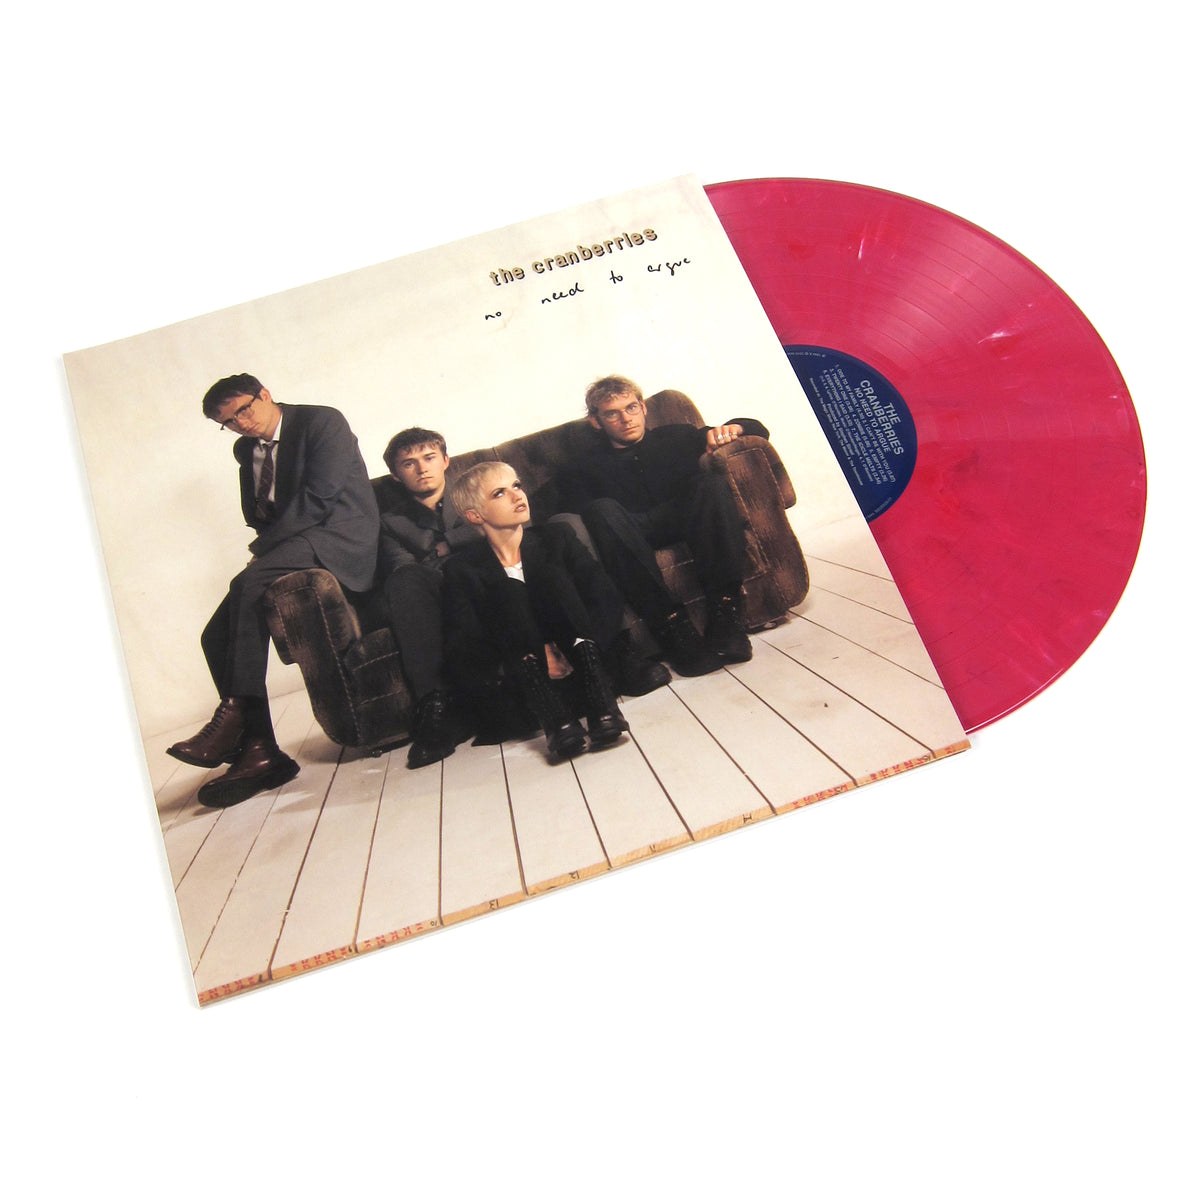 The Cranberries: No Need To Argue (Plum Red Colored Vinyl) Vinyl LP